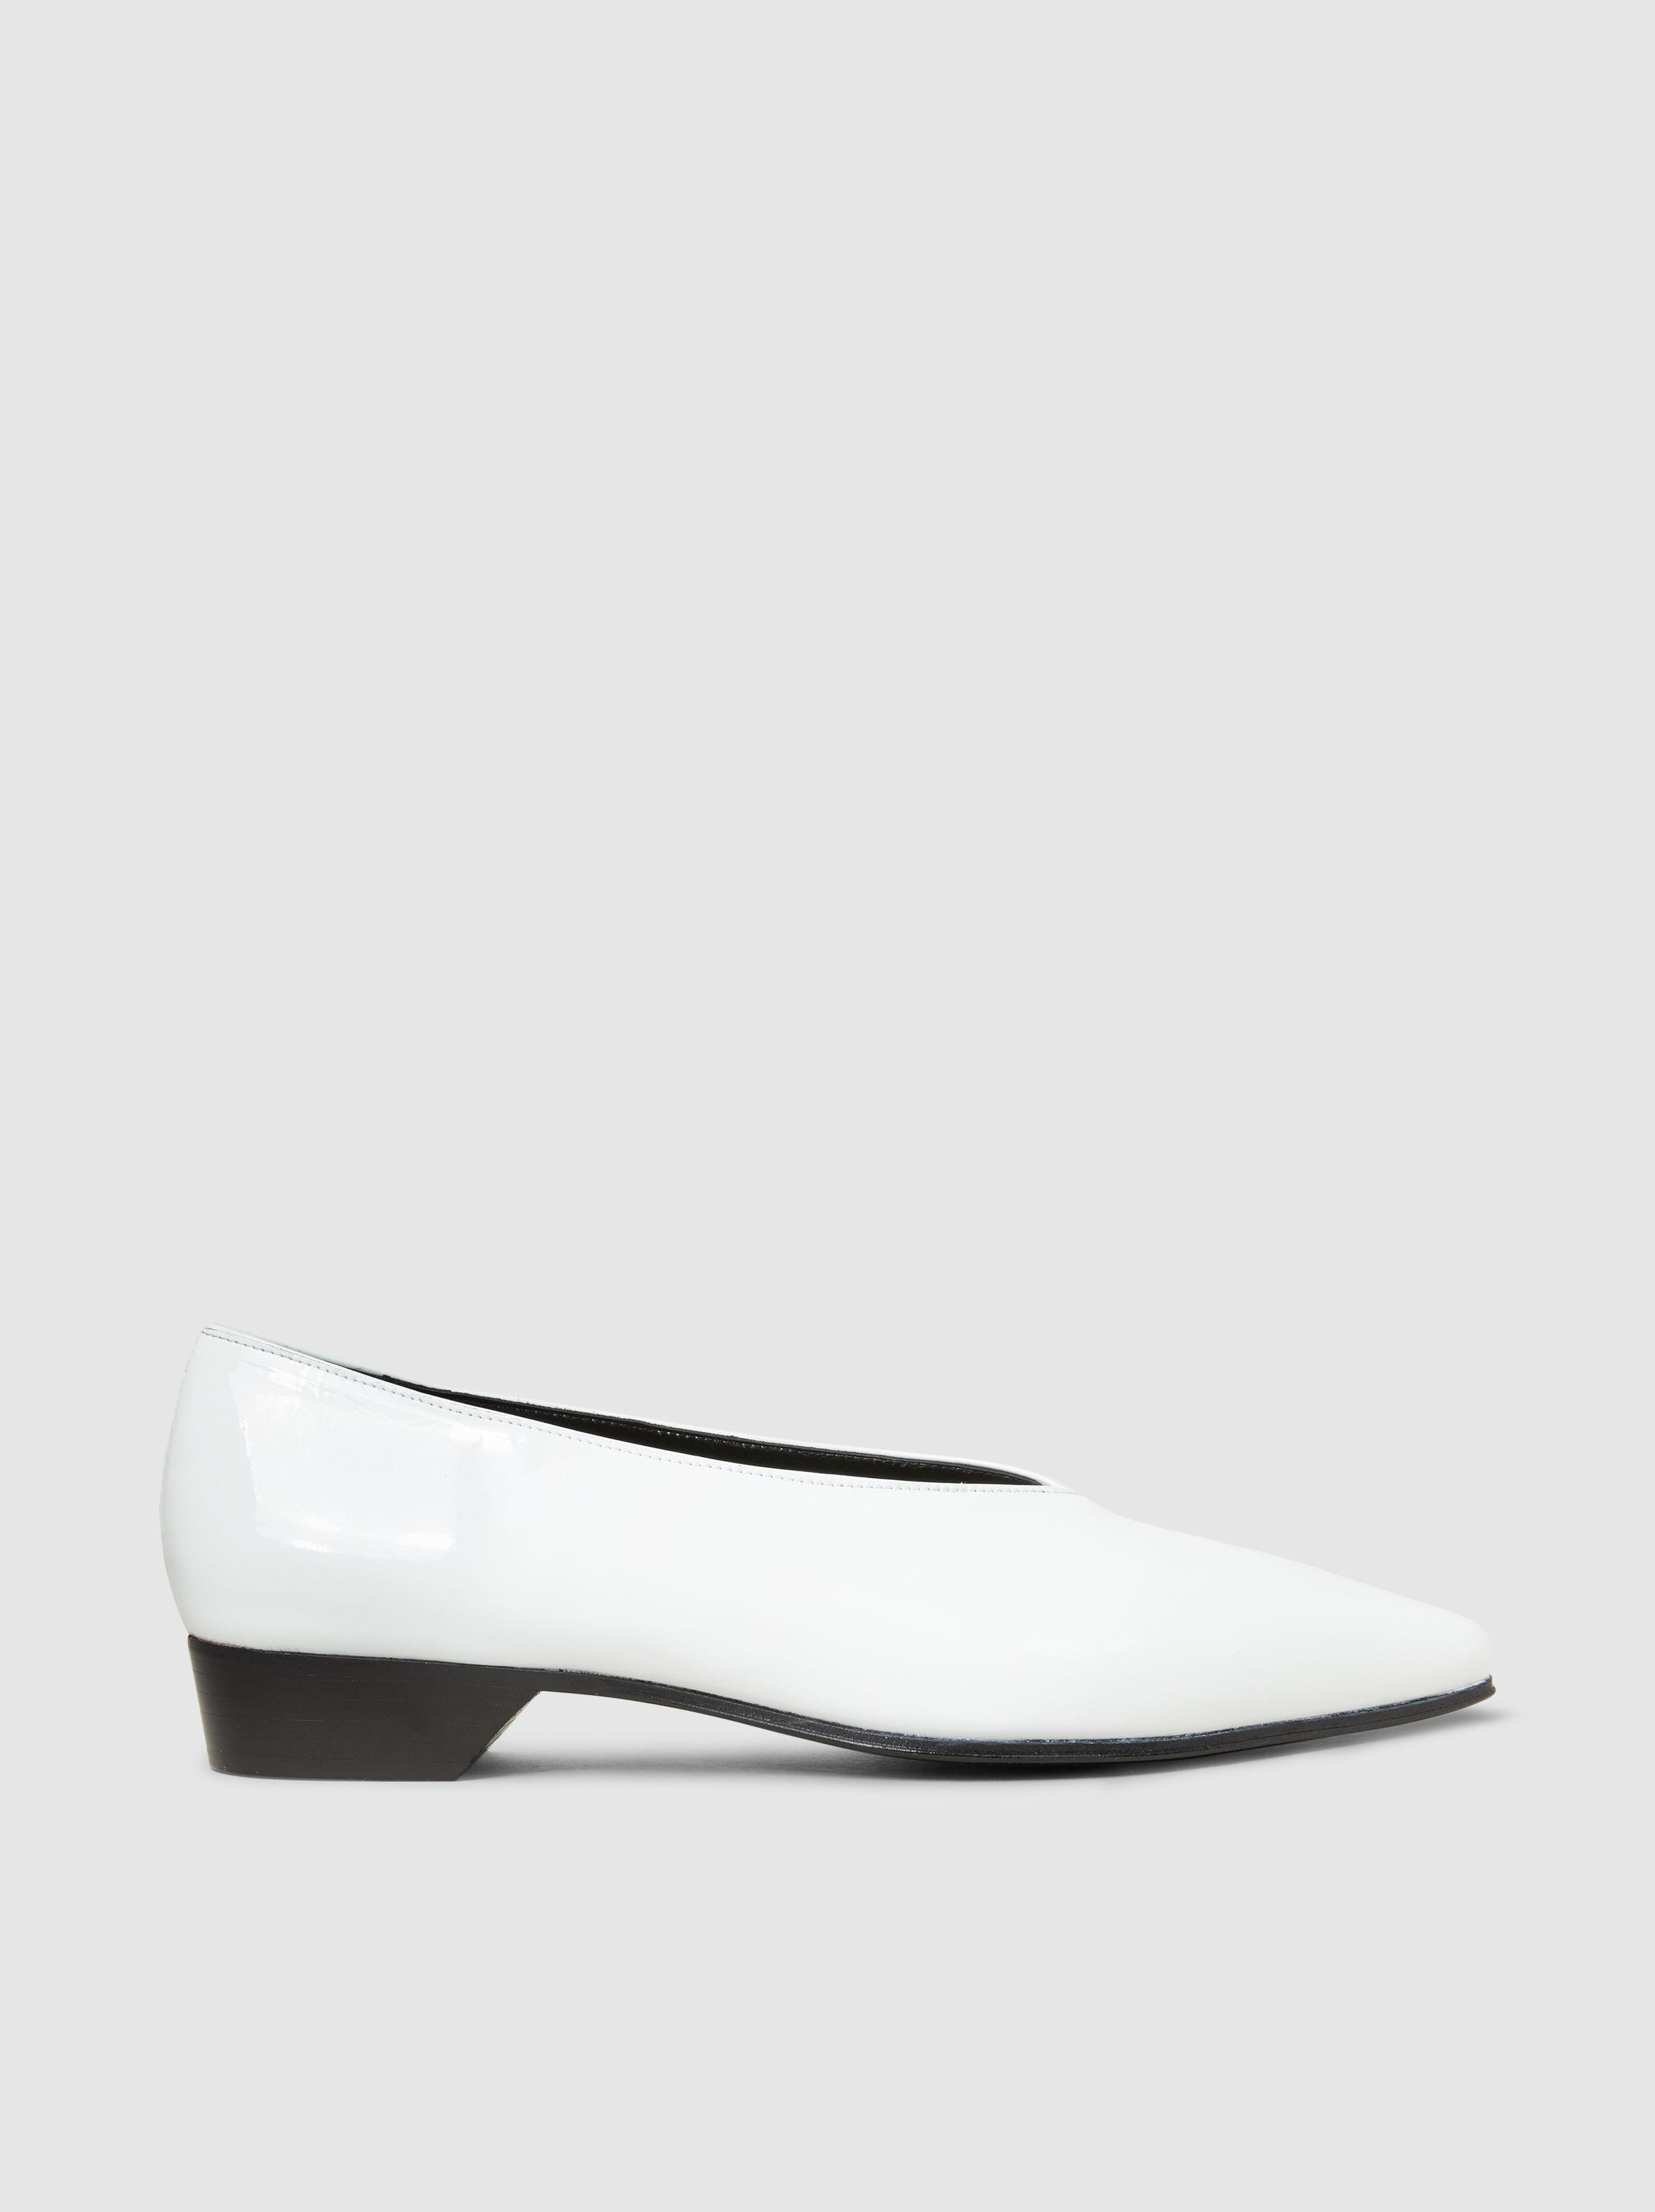 Patent-Leather Point-Toe Flats Alumnae Cheap Outlet Locations Cheap Enjoy fDqM1n7J